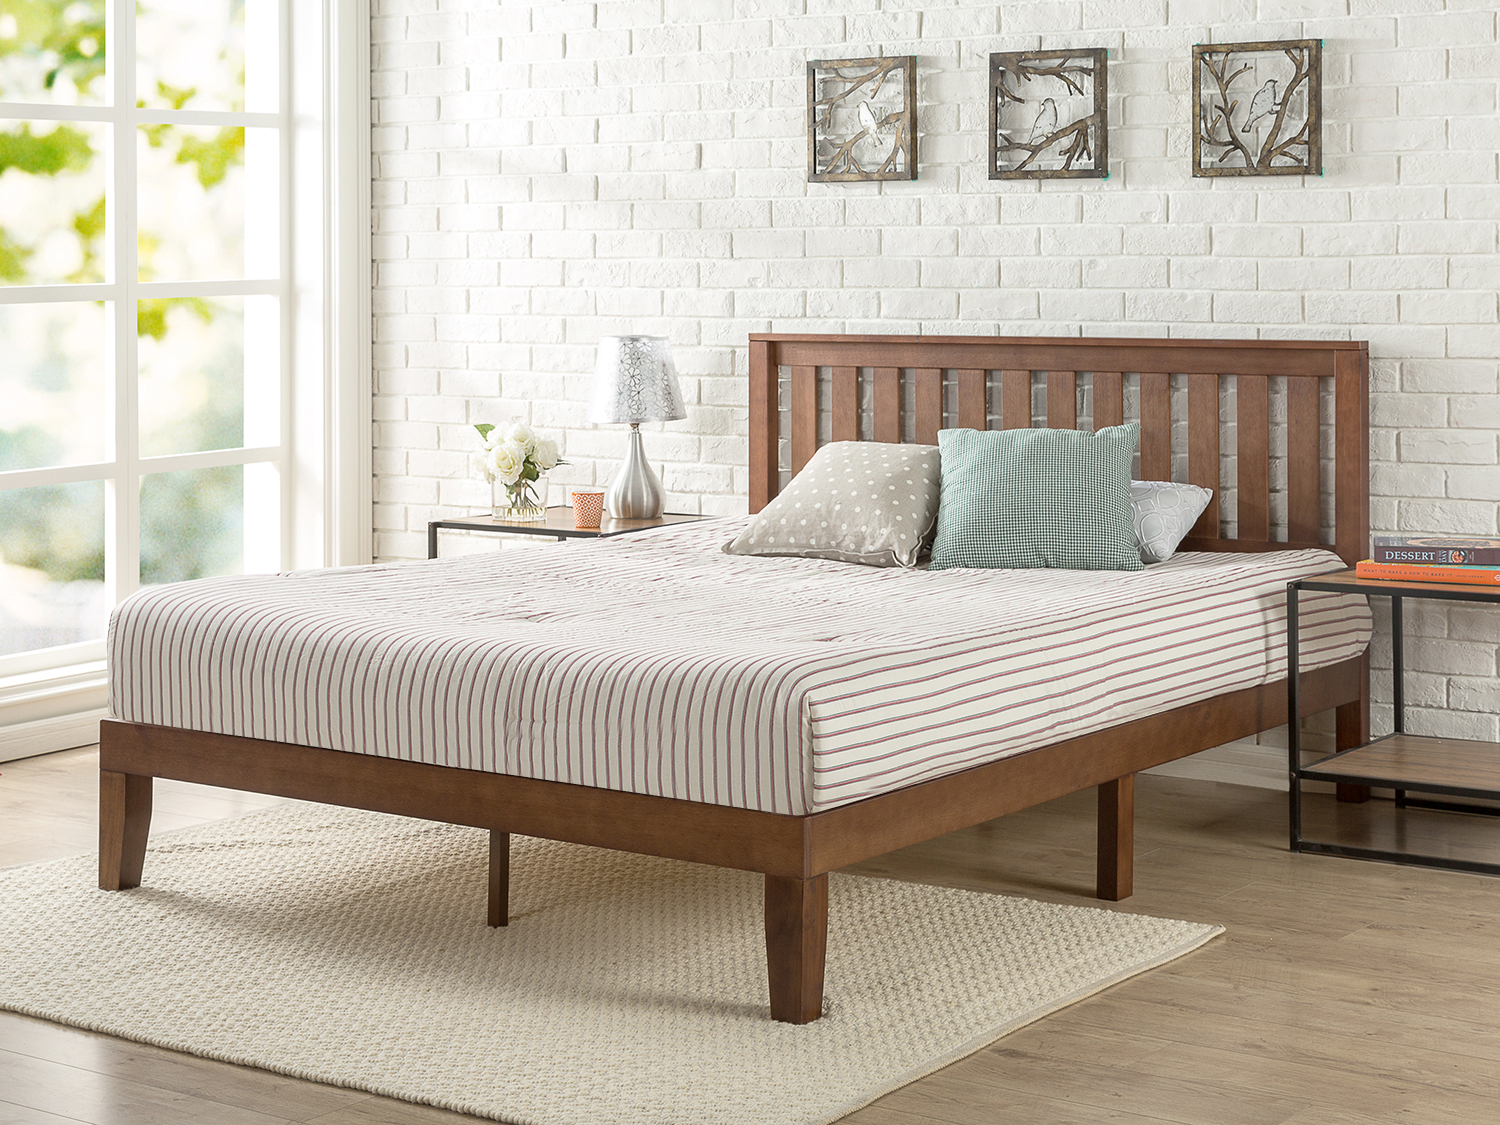 zinus queen 12 inch solid wood platform bed with headboard product variants selector price